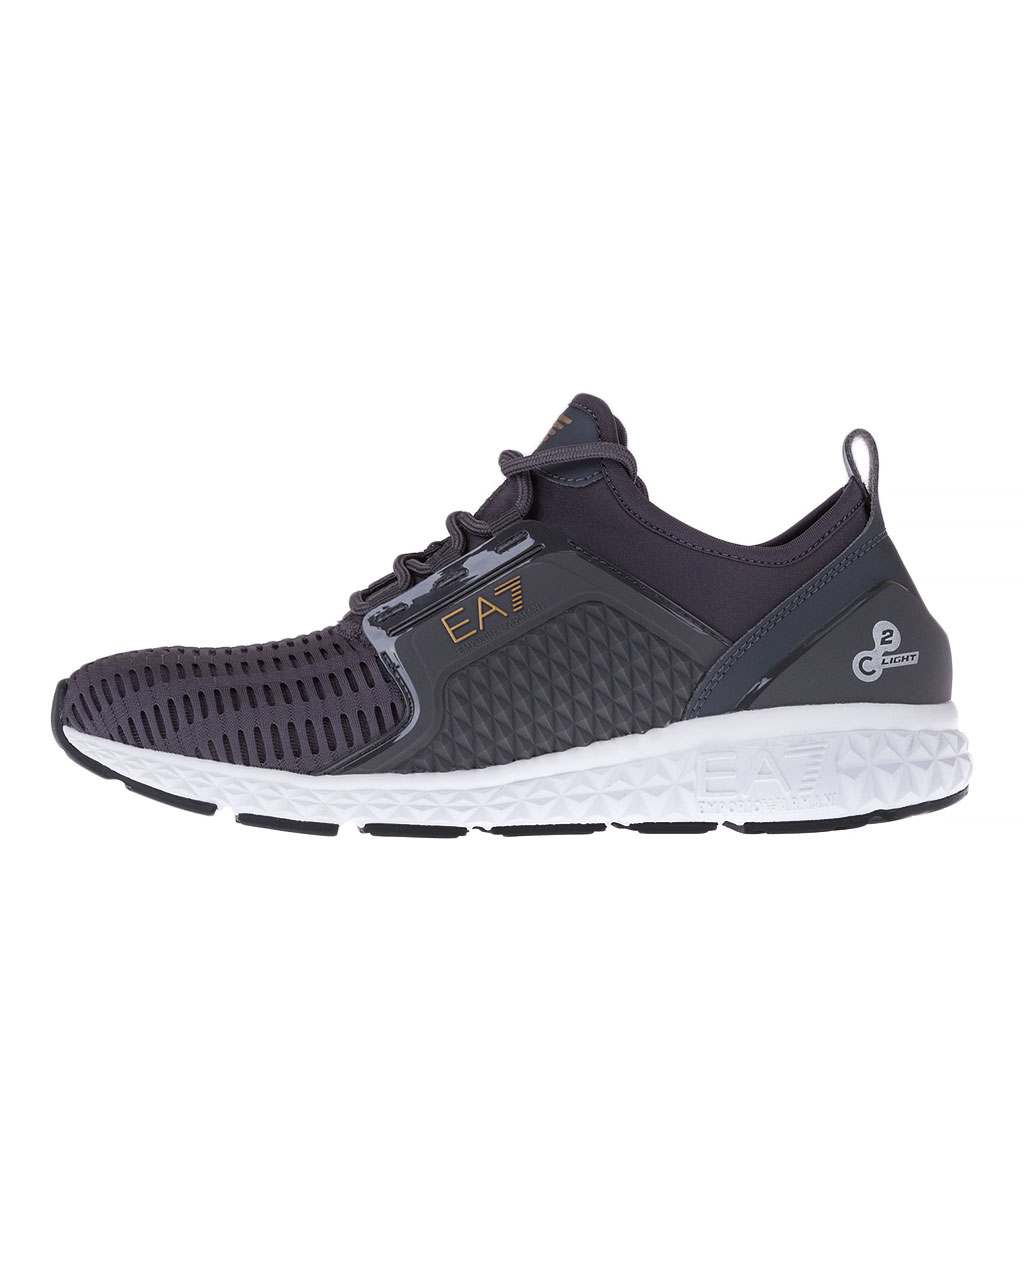 Men's shoes X8X012-XK056-G356/92-3 (1)